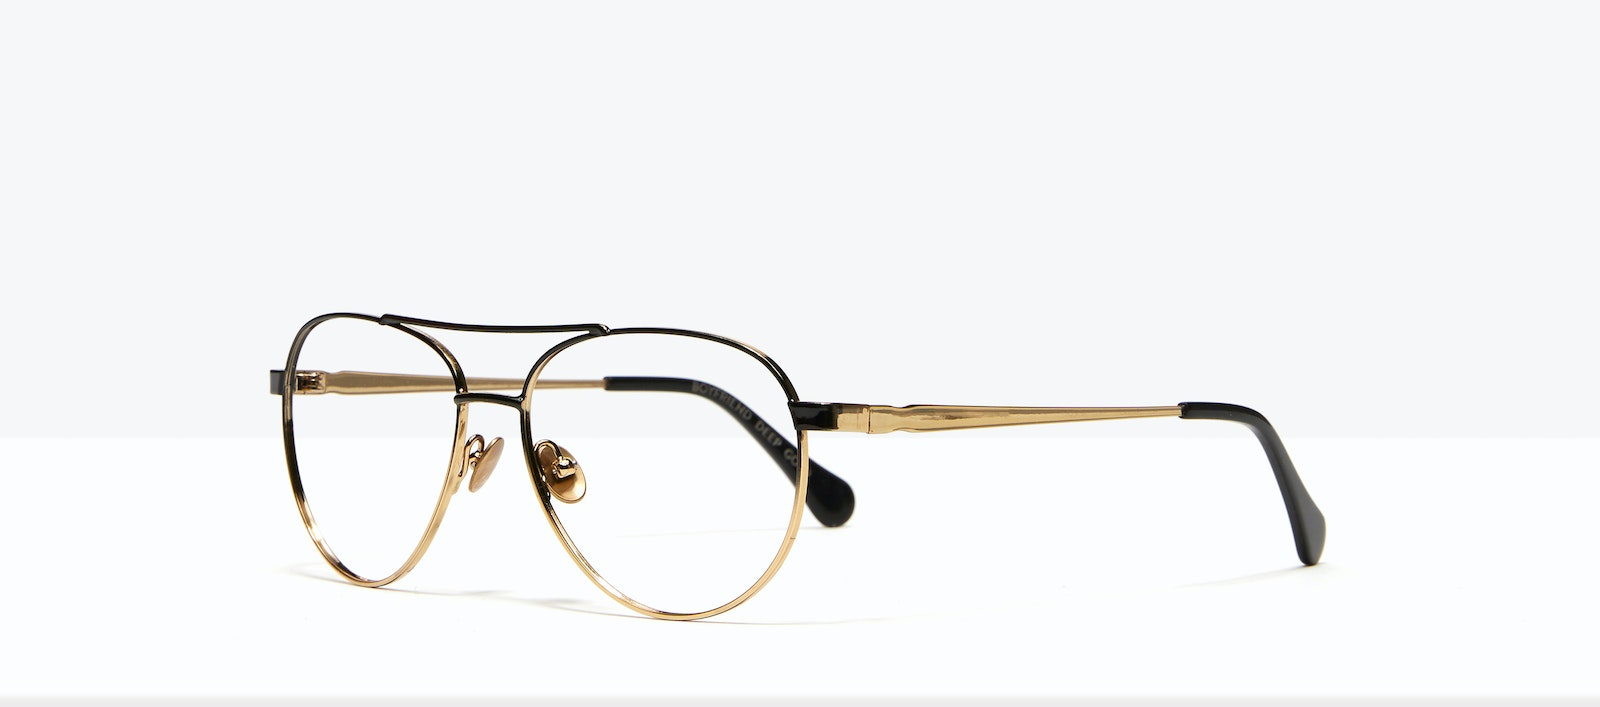 Affordable Fashion Glasses Aviator Eyeglasses Women Boyfriend Deep Gold Tilt